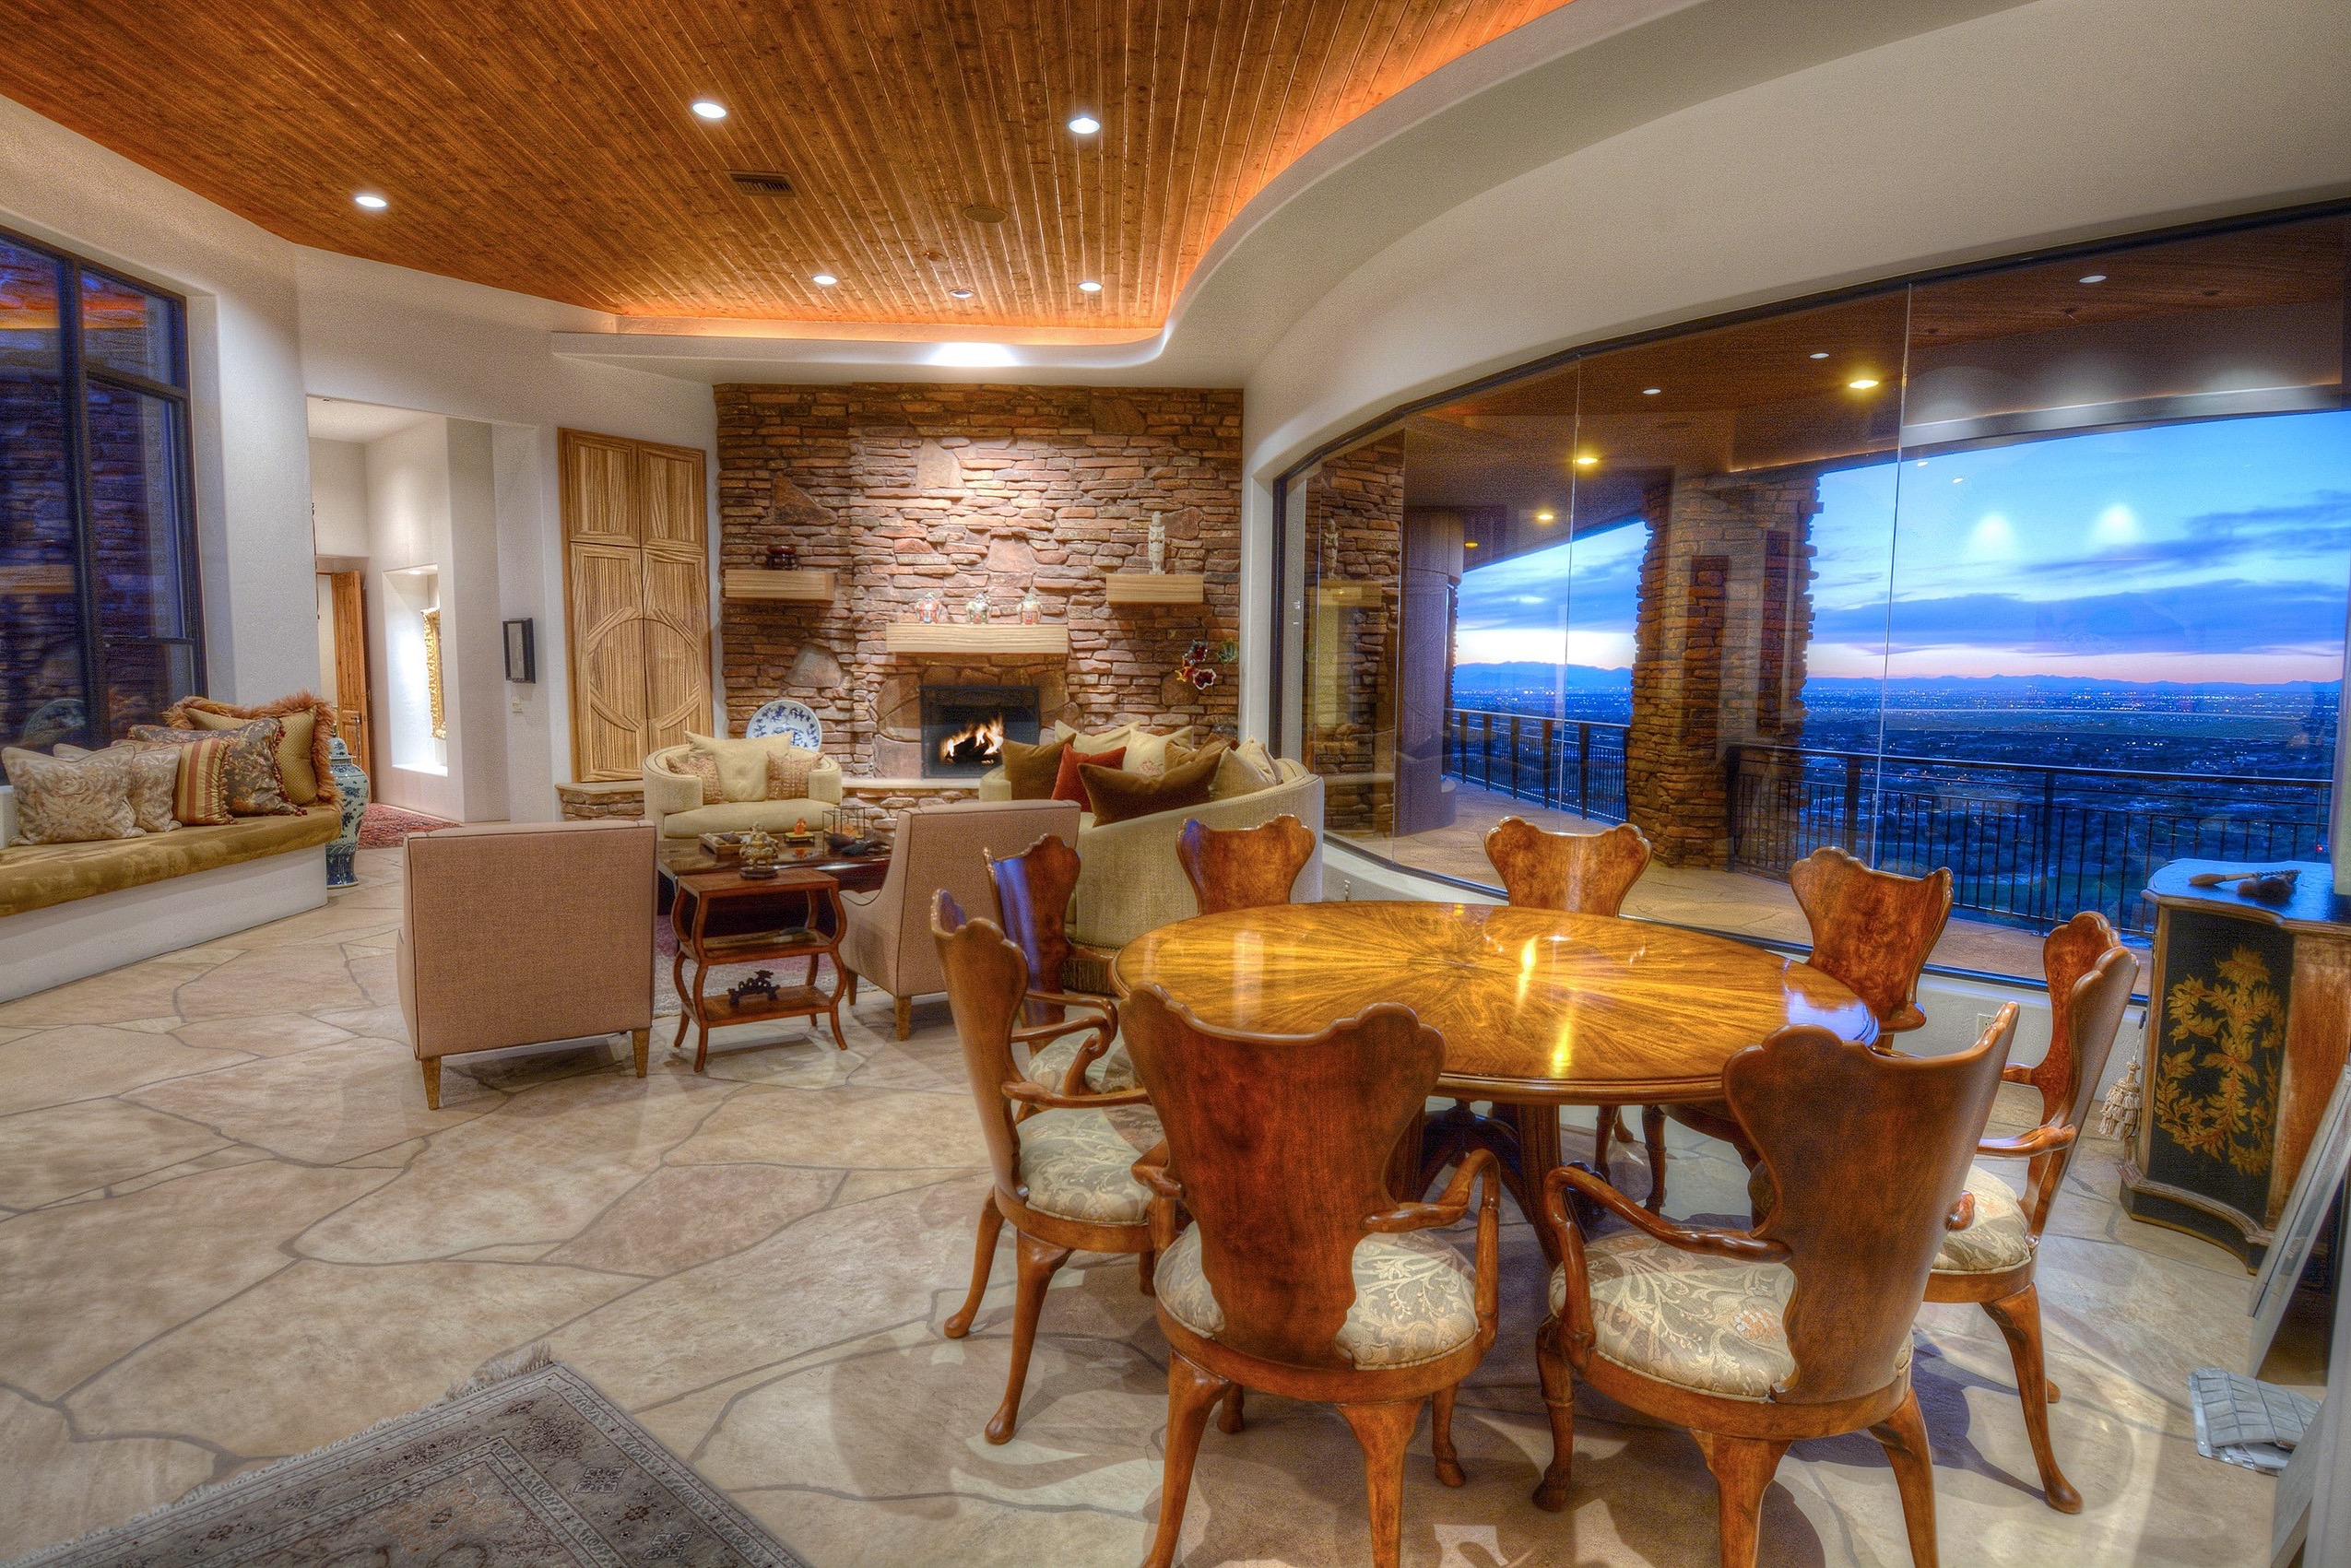 Southwestern Living And Dining Room Combo (Image 11 of 11)